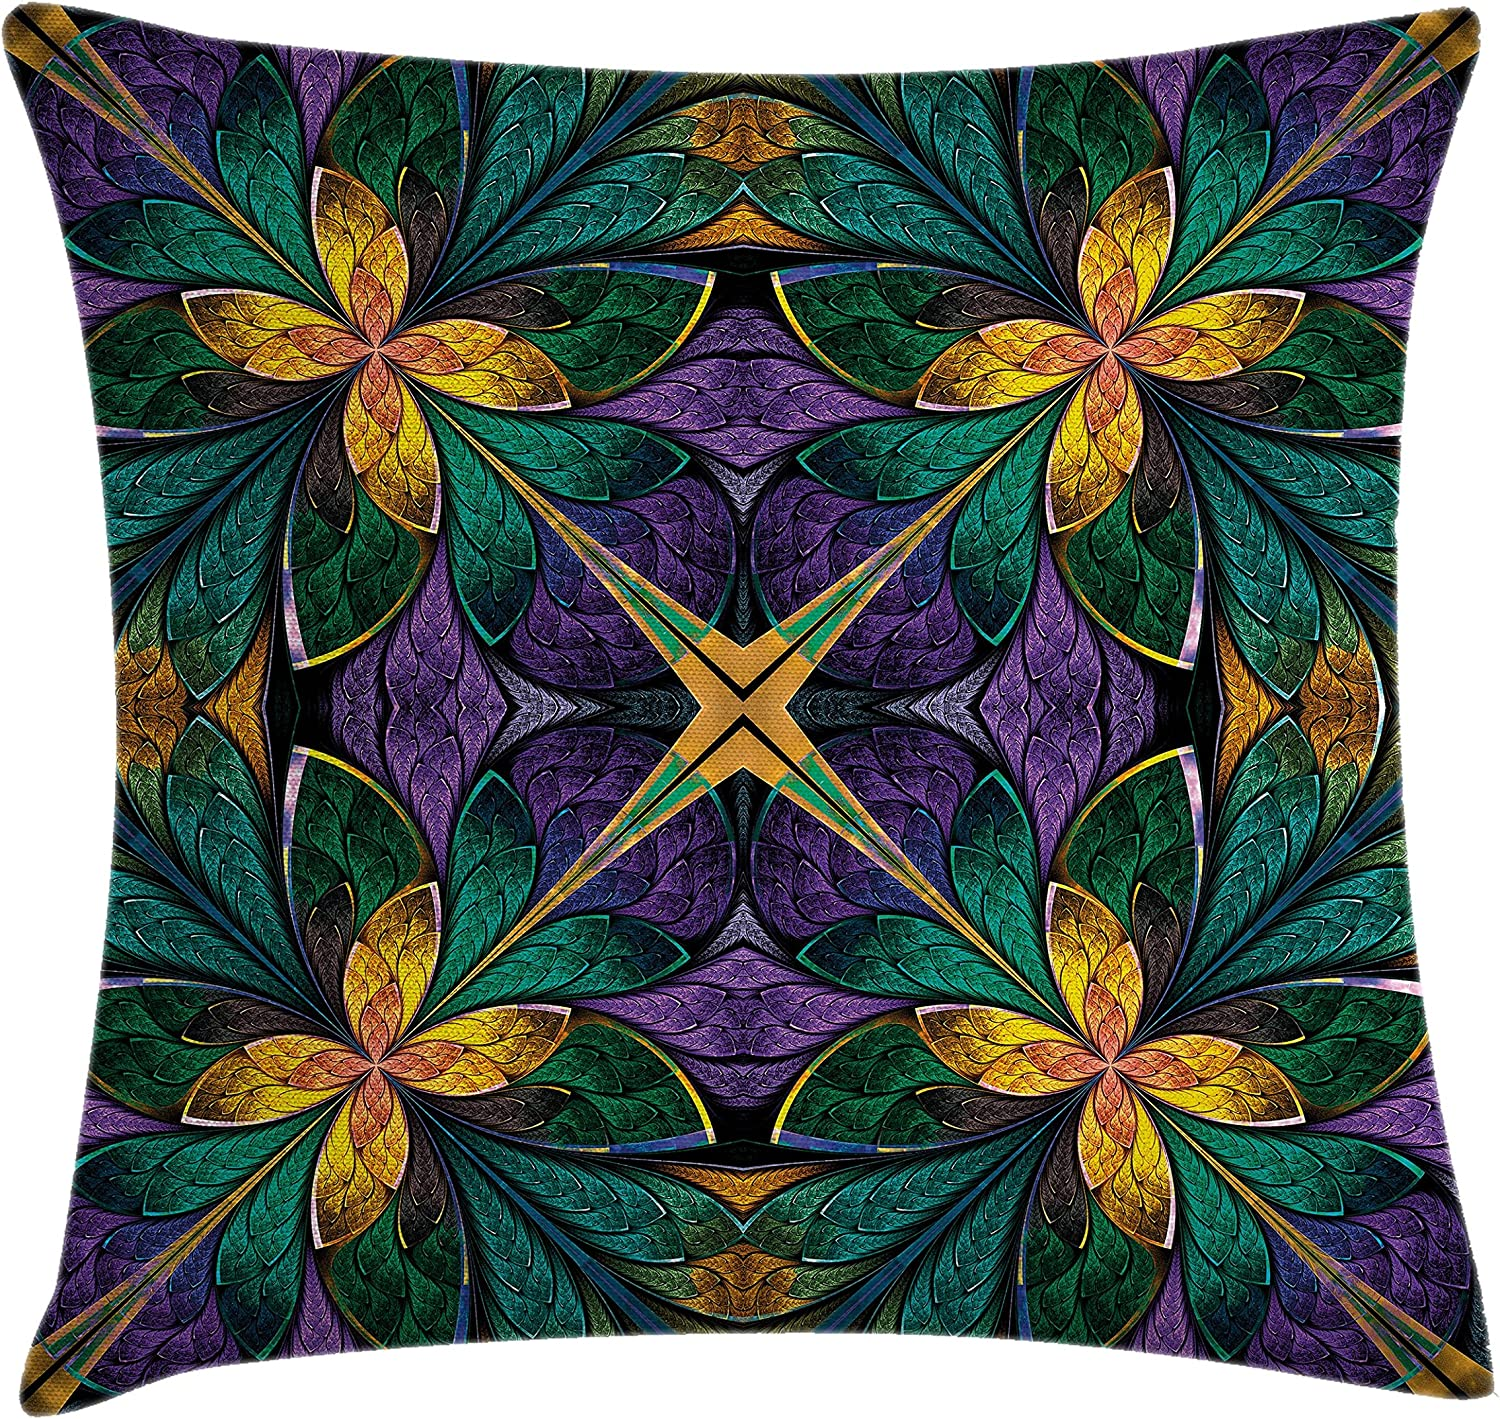 Ambesonne Fractal Throw Pillow Cushion Cover Antique Ornate Symmetric Stained Glass Mosaic Window Style Floral Tile Pattern Decorative Square Accent Pillow Case 16 X 16 Green Purple Home Kitchen